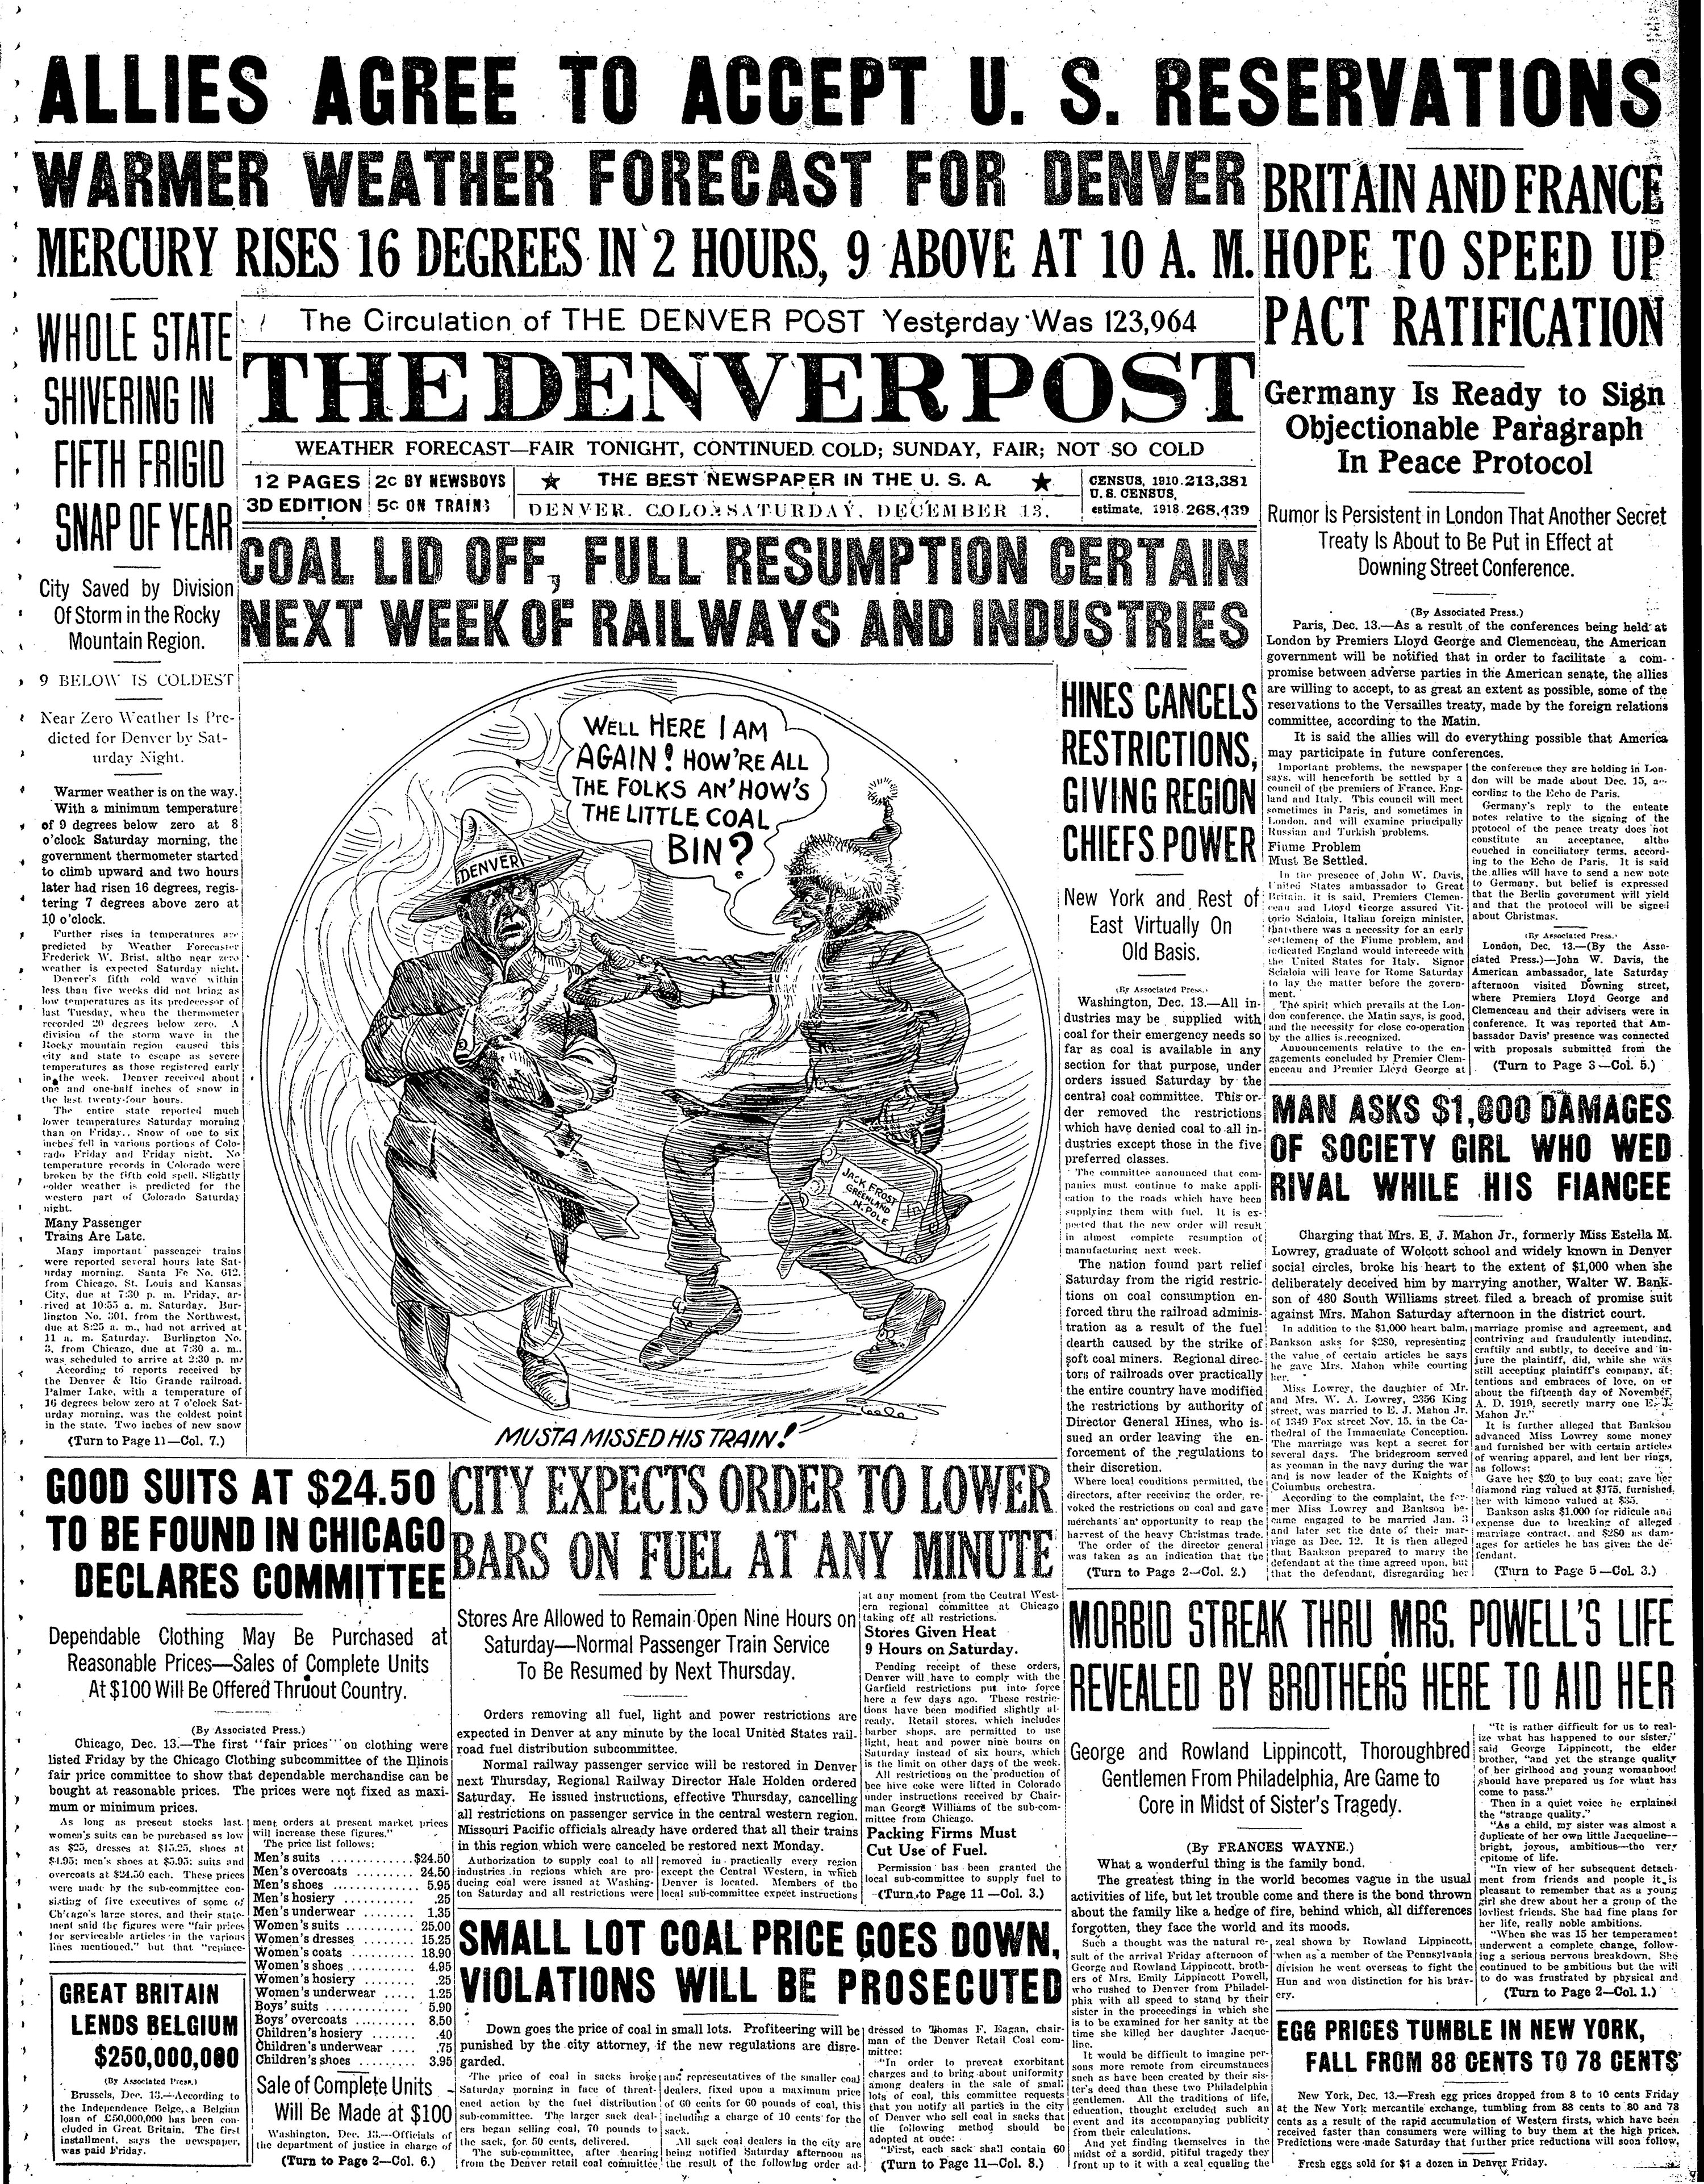 The Denver Post December 13, 1919